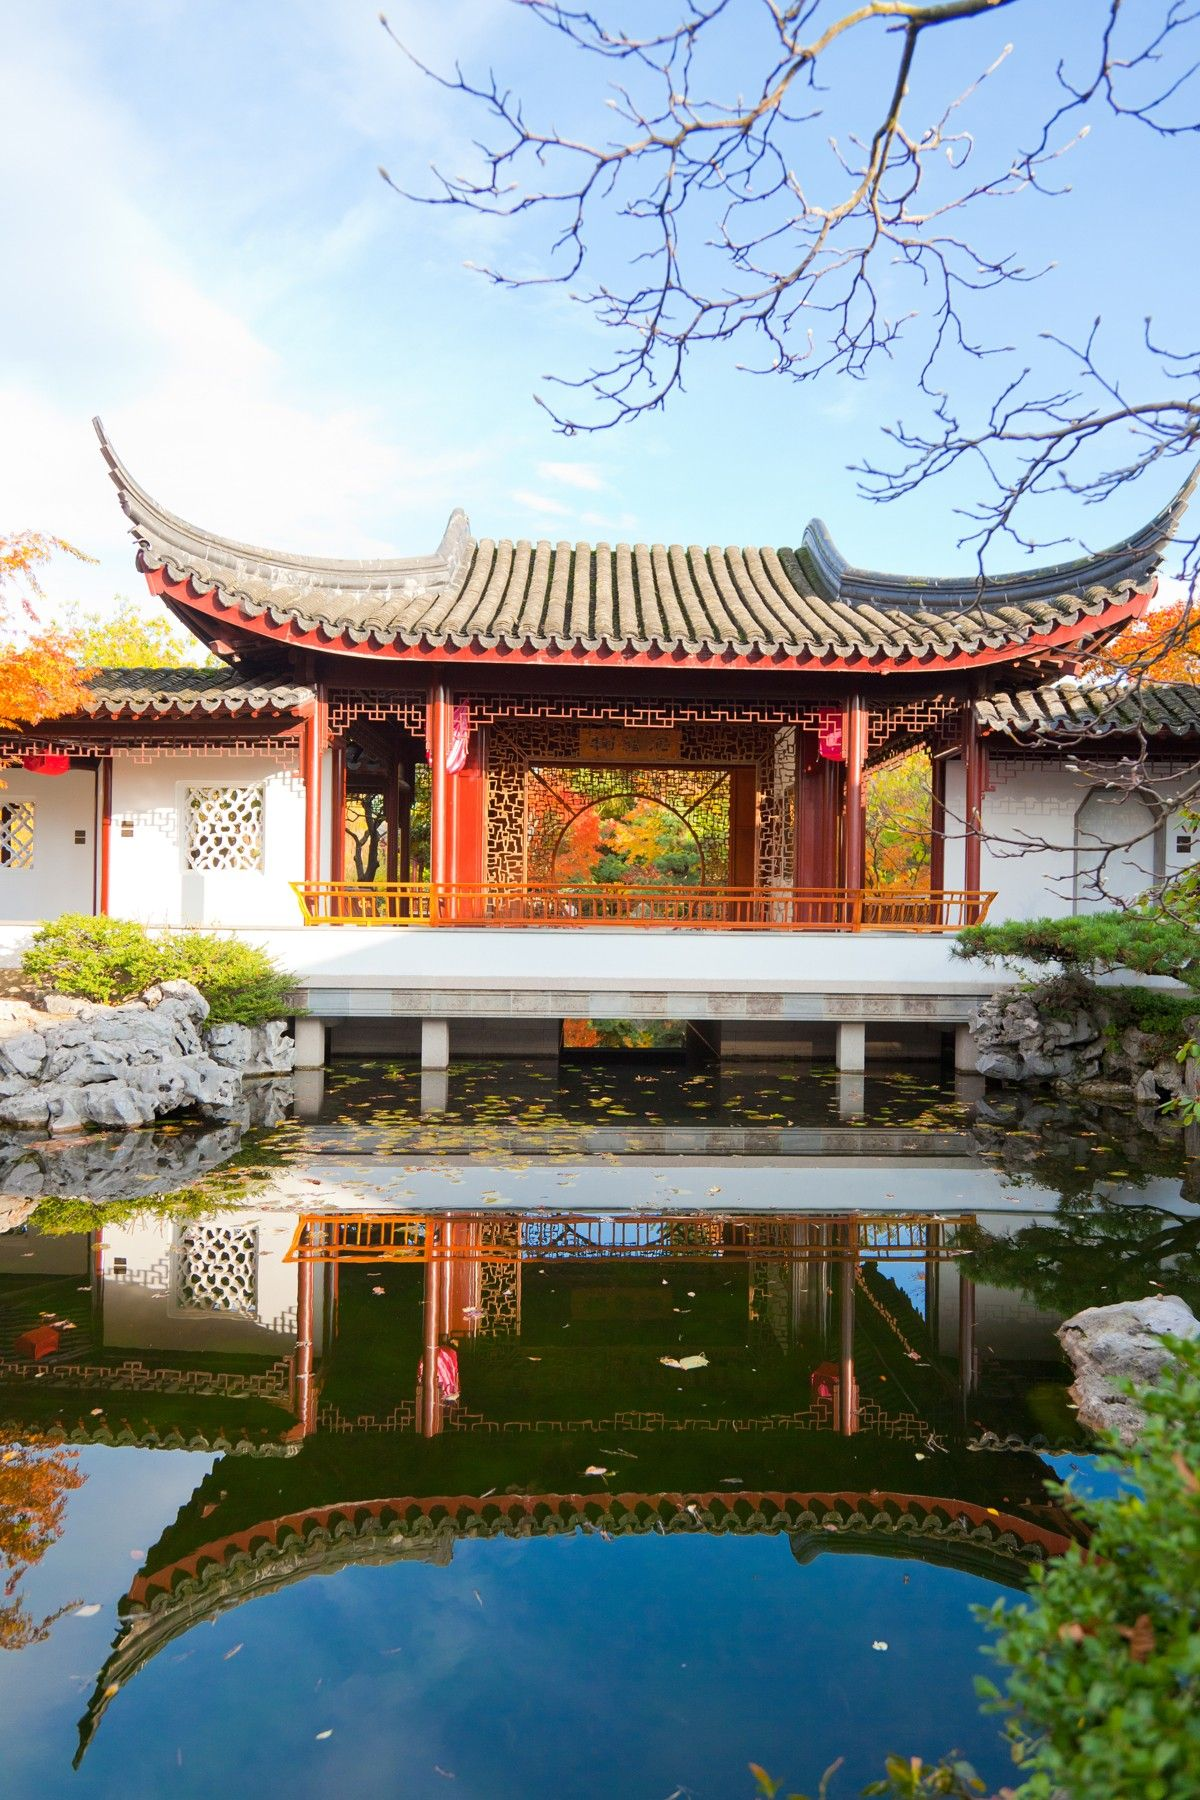 Dr Sun Yat Sen Classical Chinese Garden, Vancouver - British Columbia,